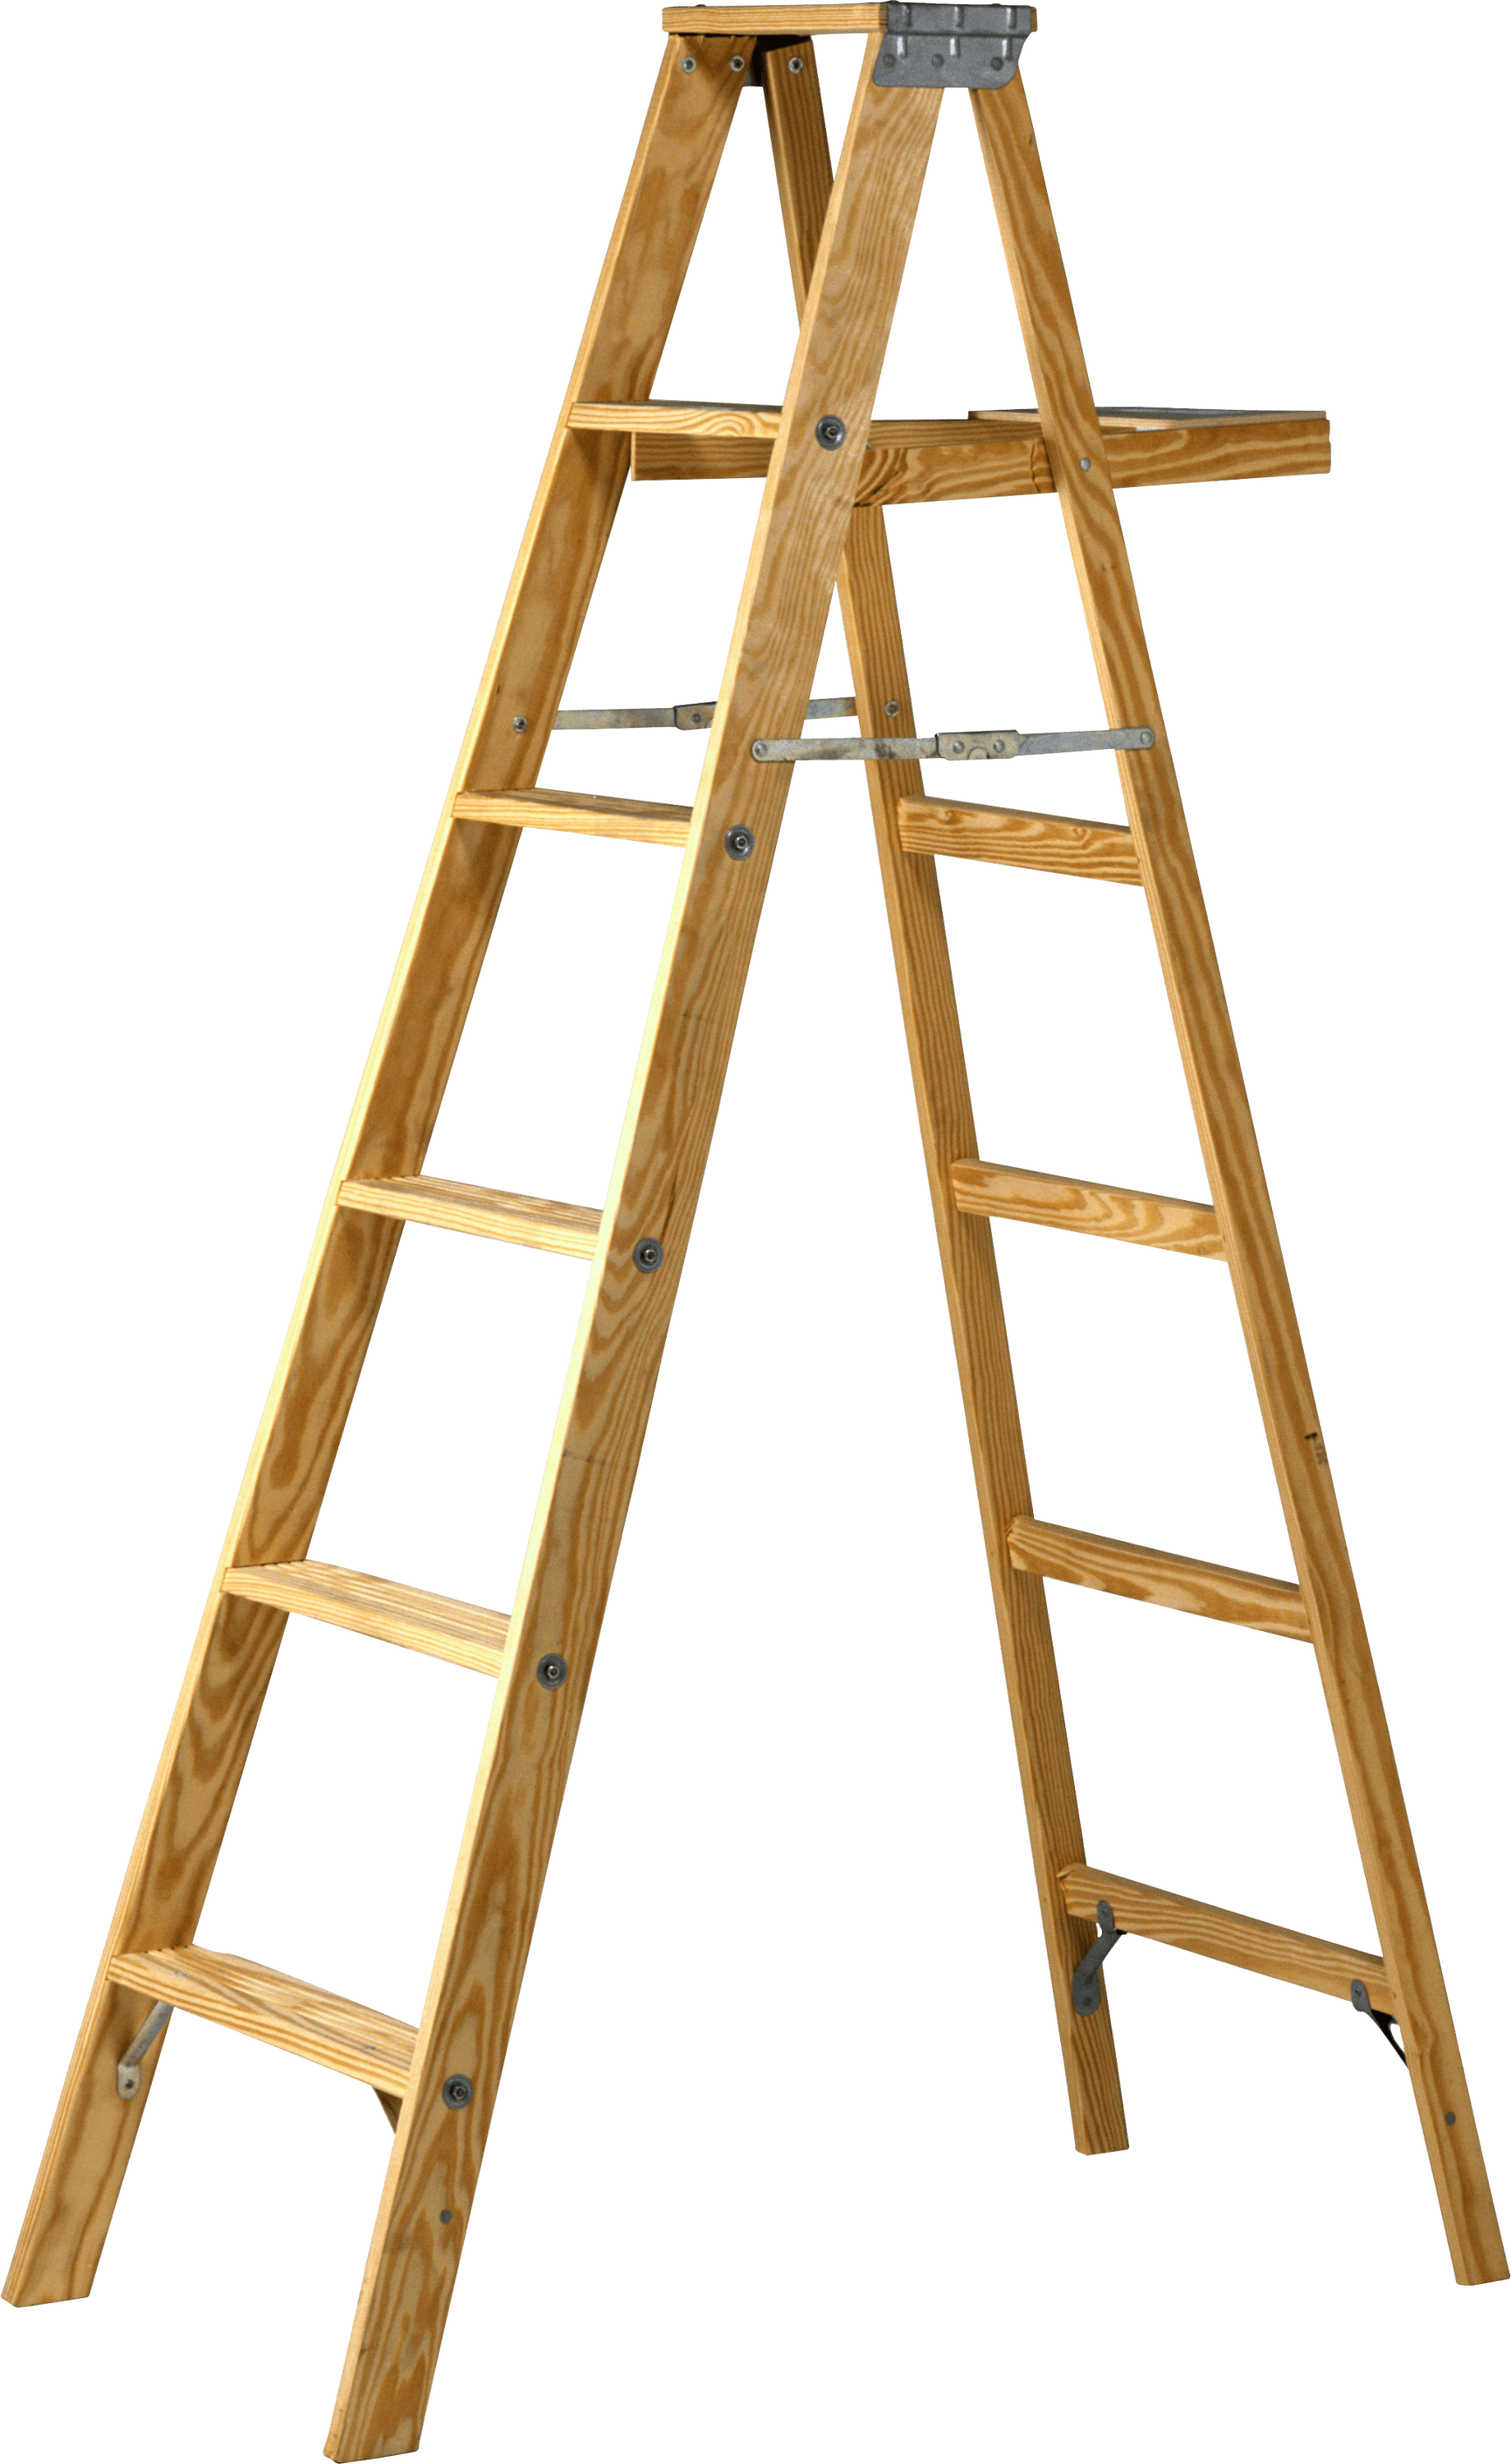 Ladder clipart wood ladder. Pin by apple kids